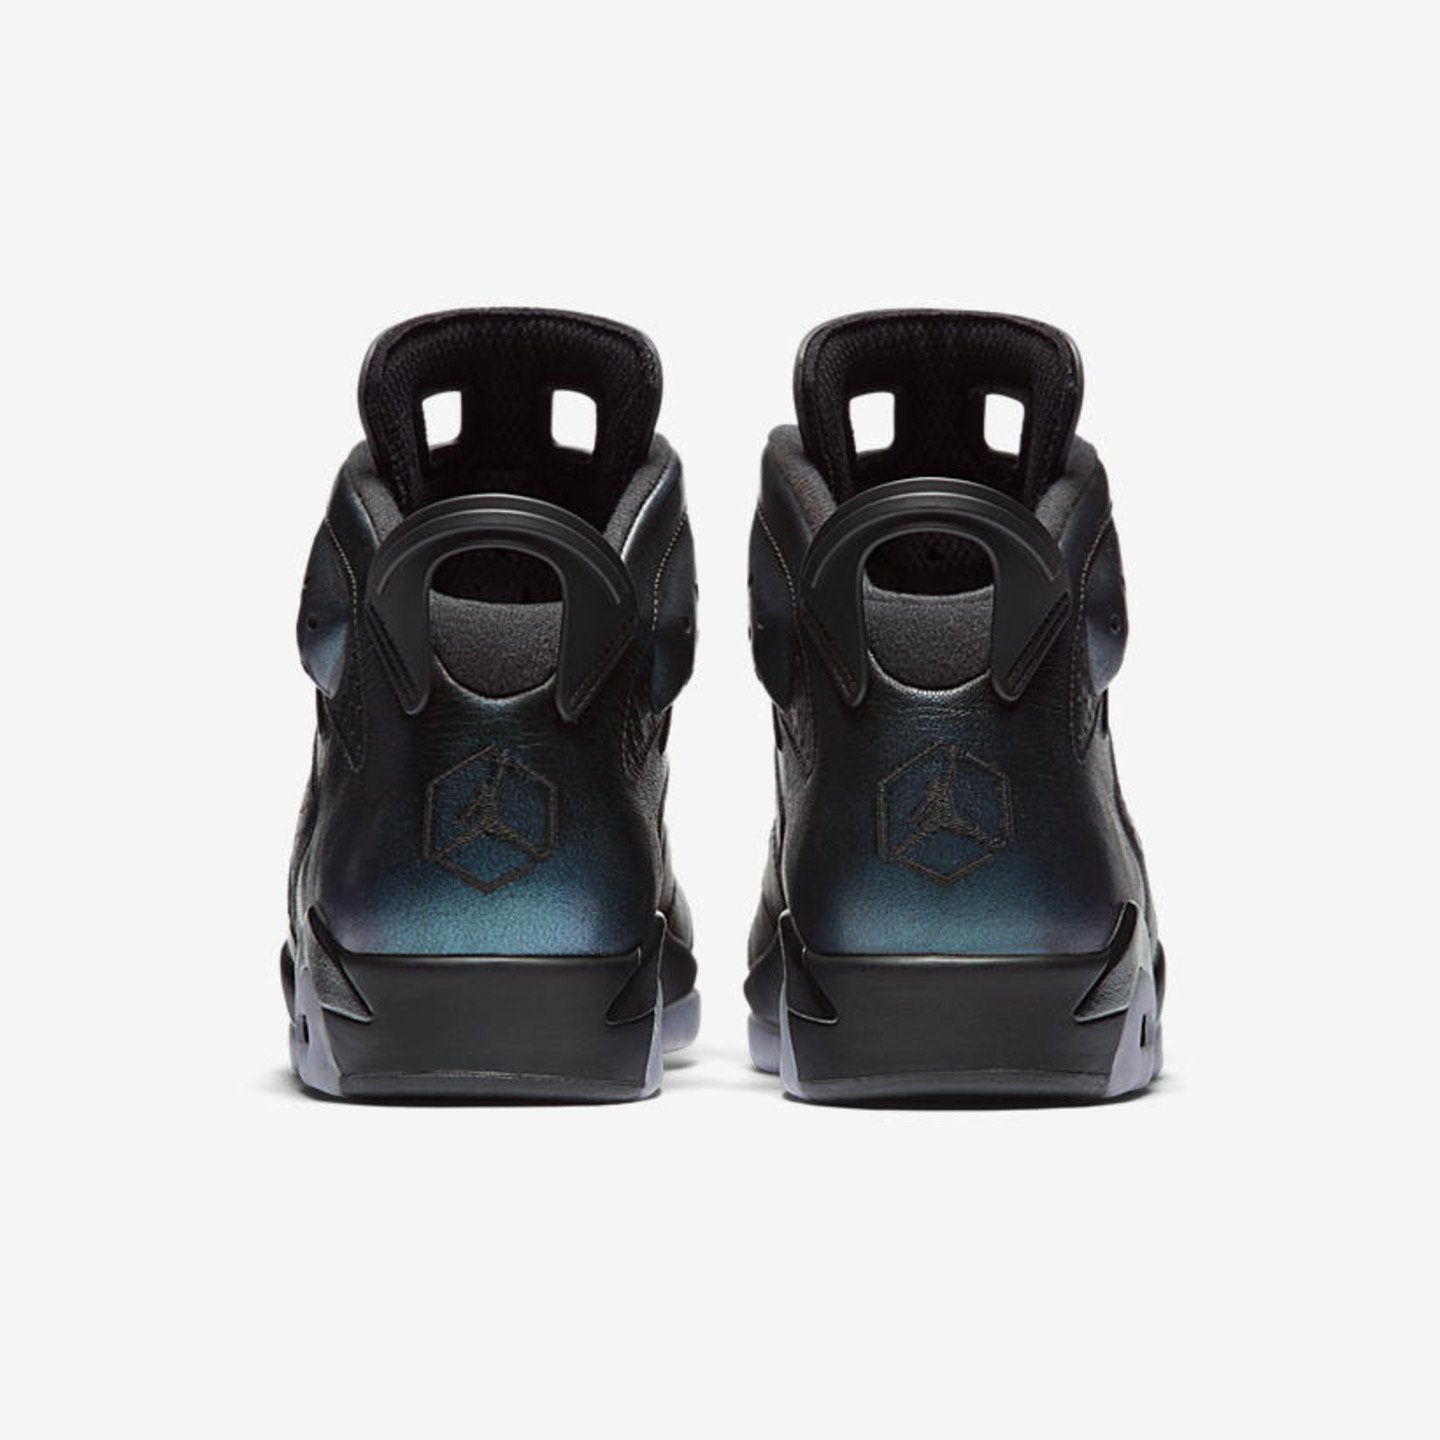 Jordan Air Jordan 6 Retro GS 'All Star' Black / Iridescent 907960-015-39